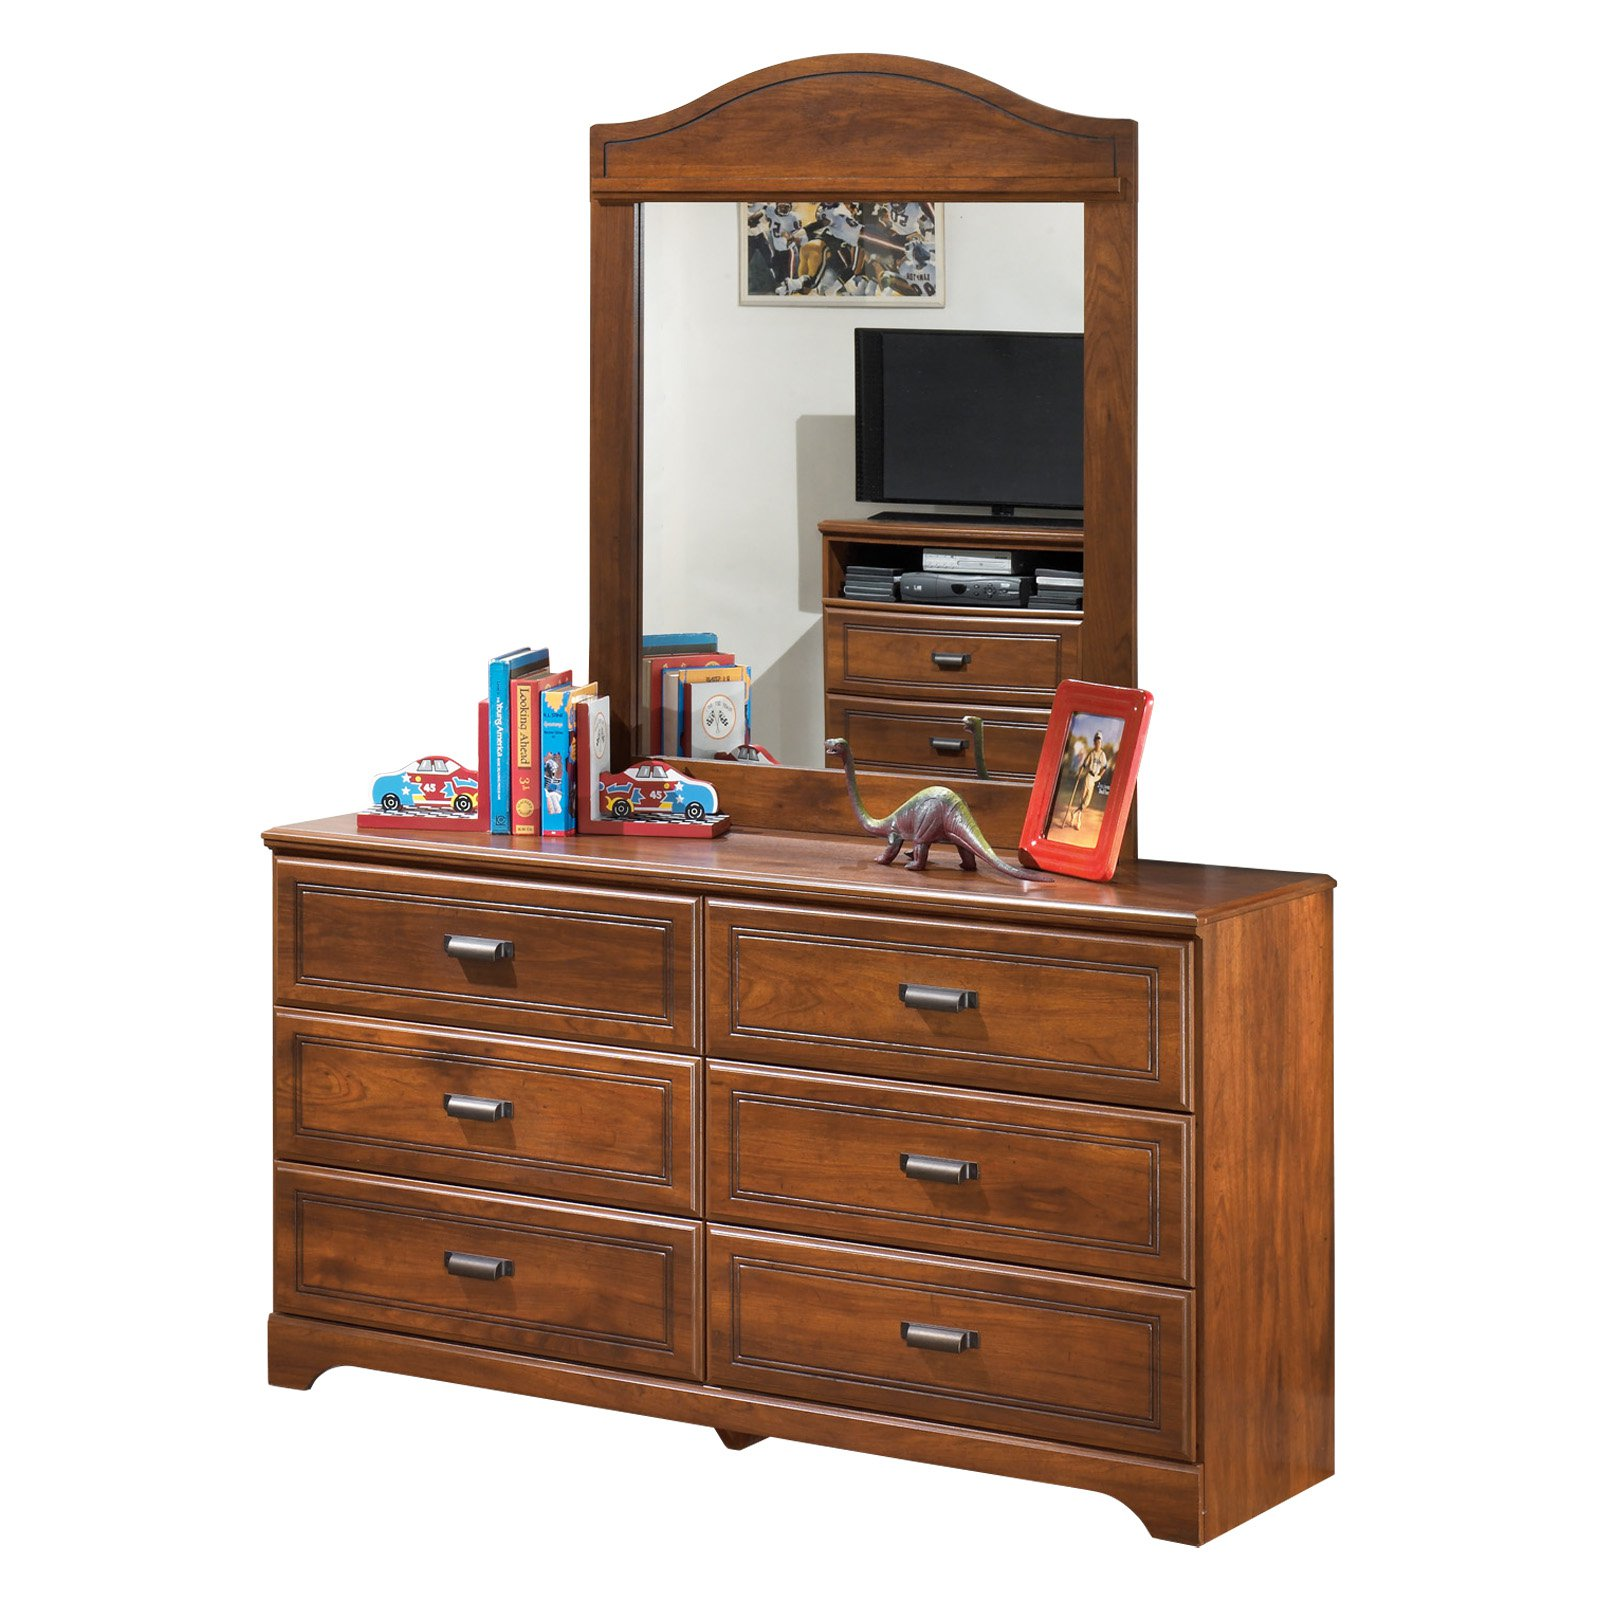 Signature Design by Ashley Barchan 6 Drawer Dresser with Mirror